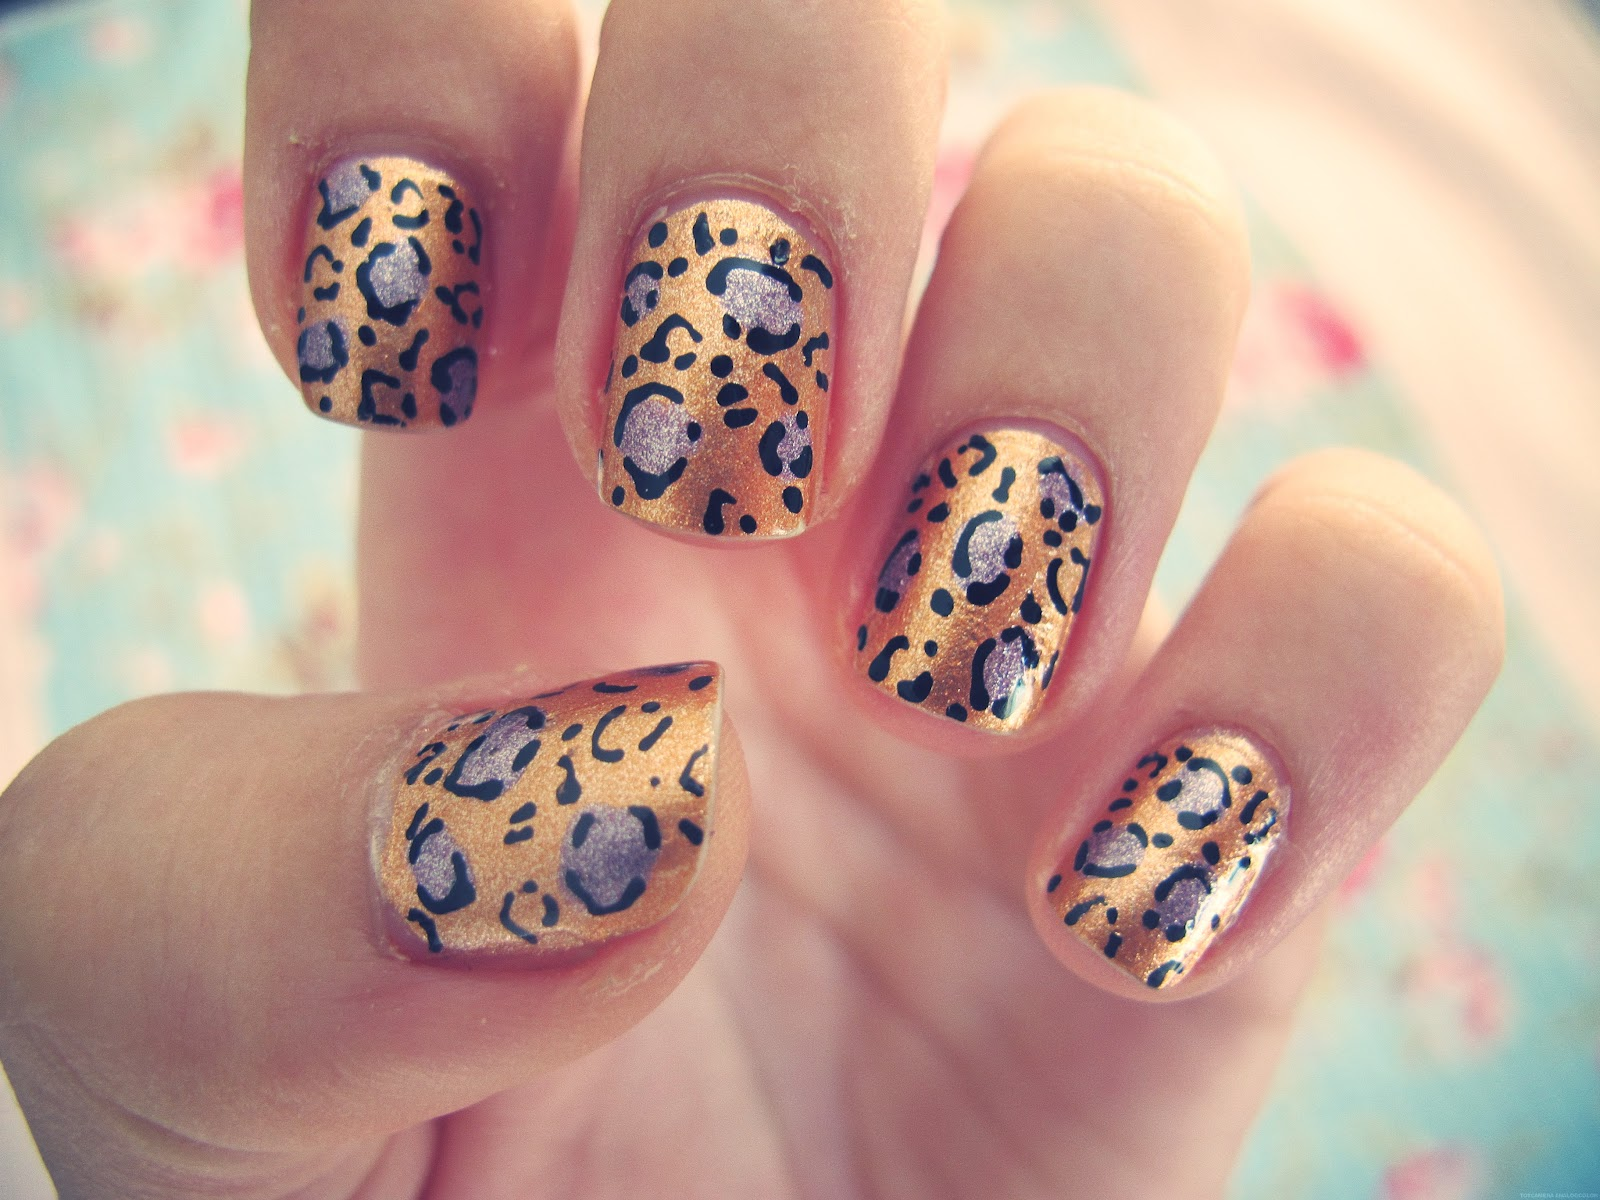 15 Cute Nail Art Designs You Will Fall in Love With - Pretty Designs